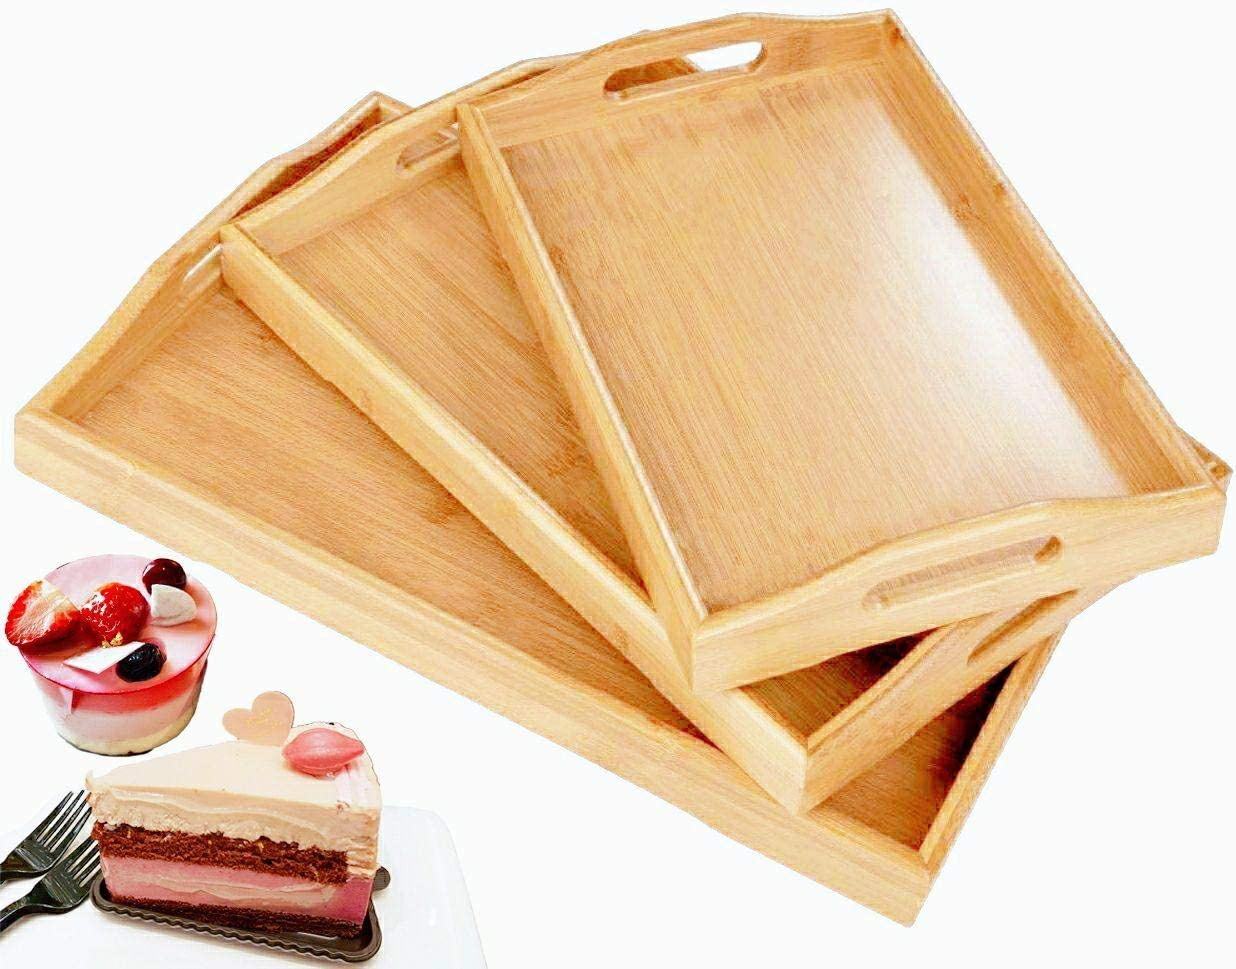 Serving Tray with Handles, Wood Serving Tray, Bamboo Serving Tray for Ottoman, Food, Breakfast, Dinner, Coffee Table, Party, Restaurants, Decor Set of 3